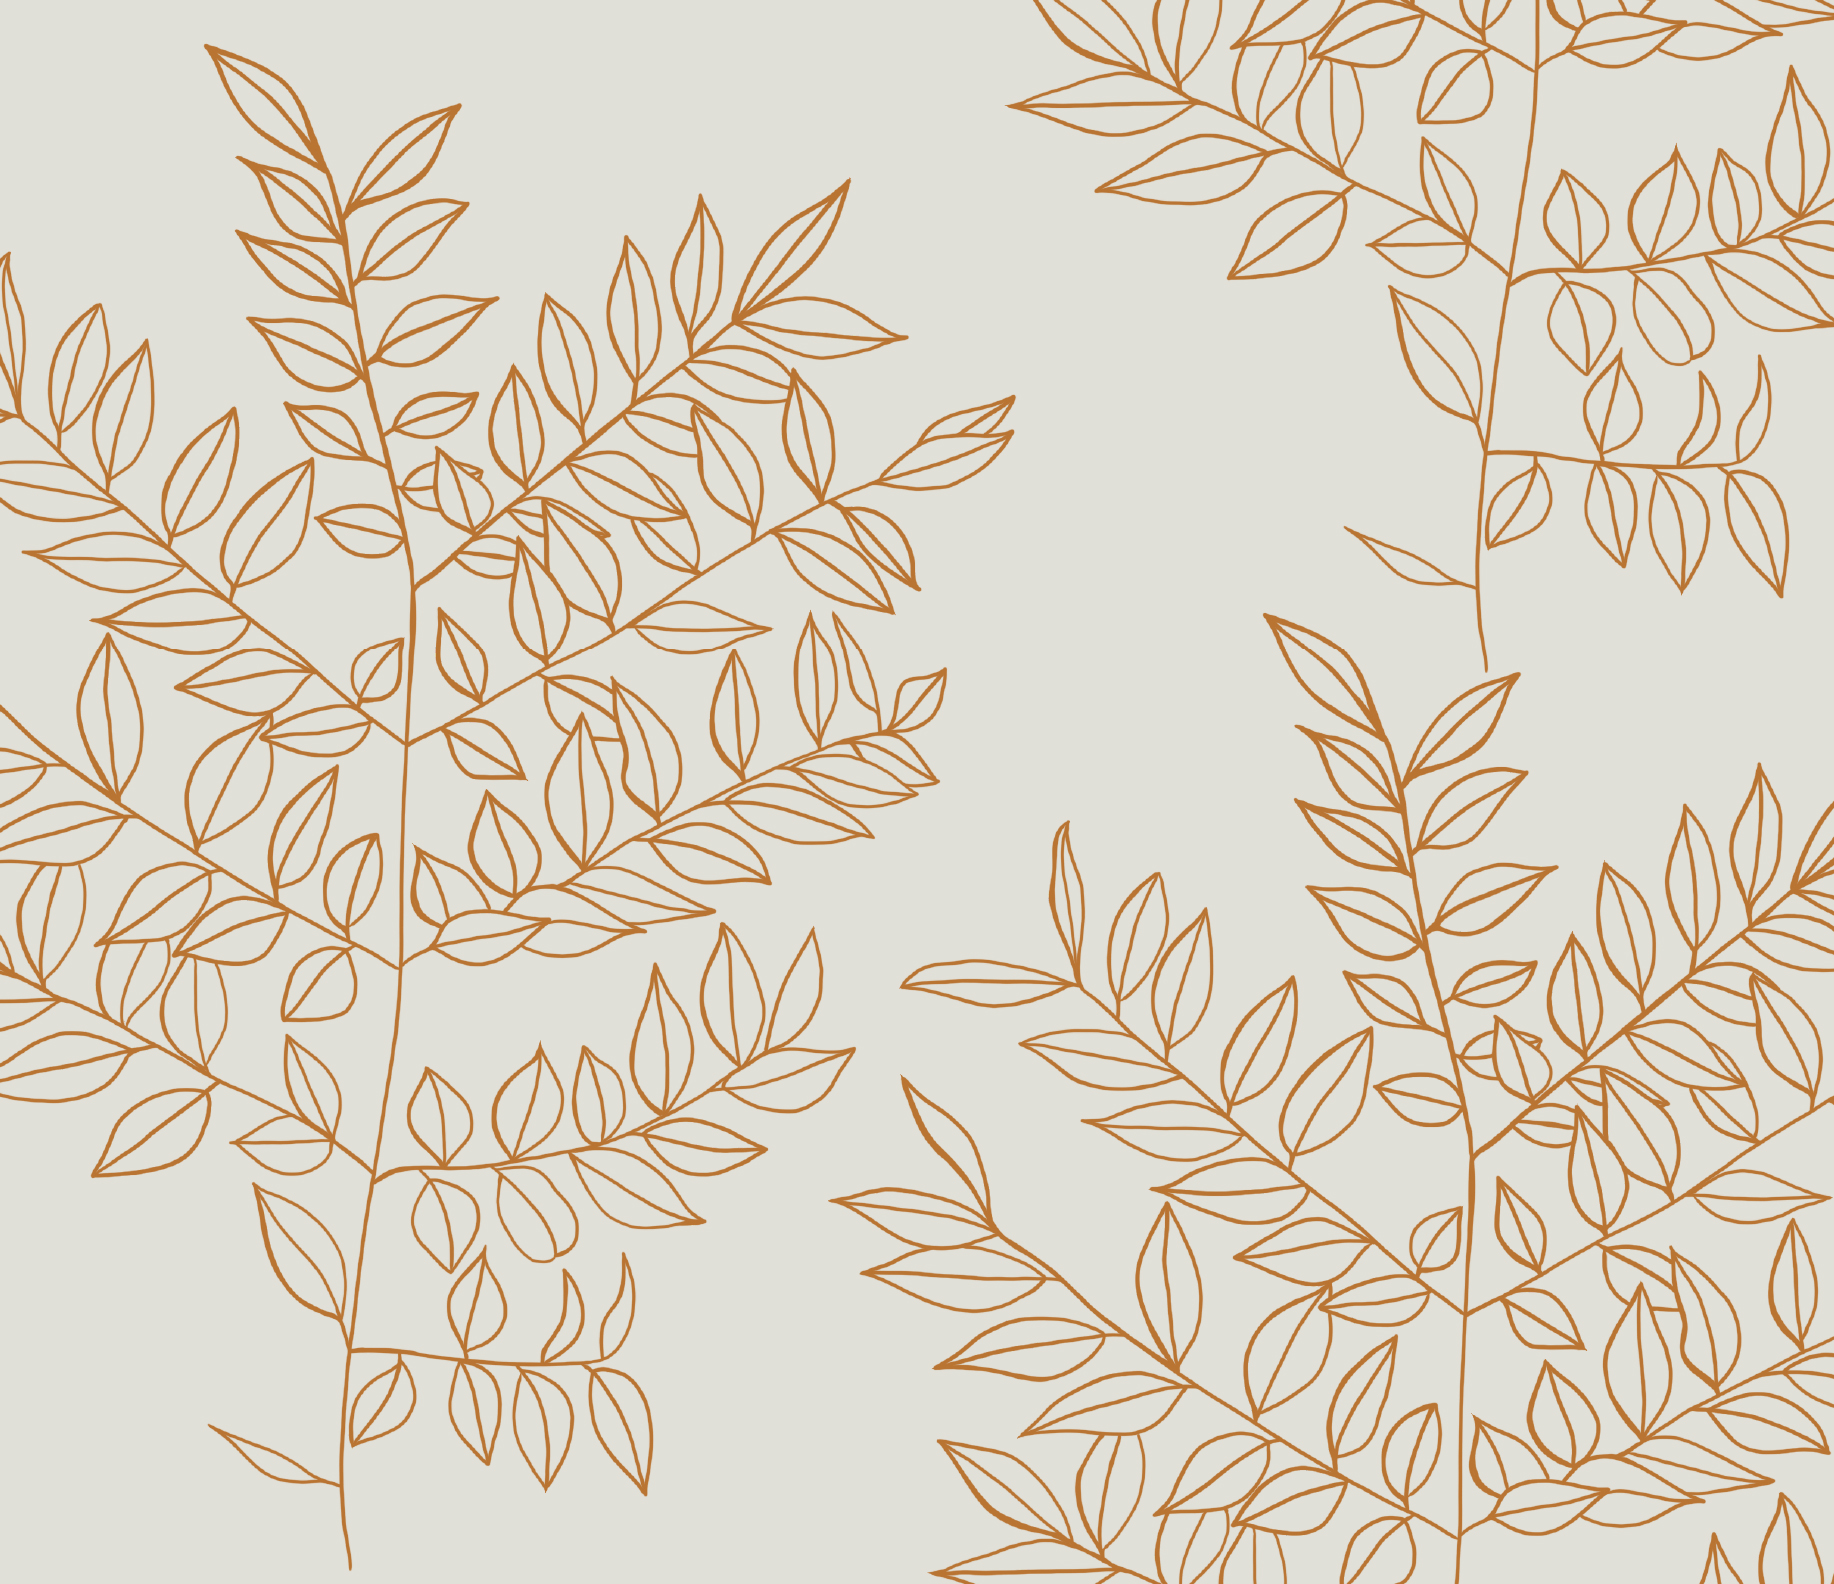 A floral pattern illustration for Brewpoint Coffee.